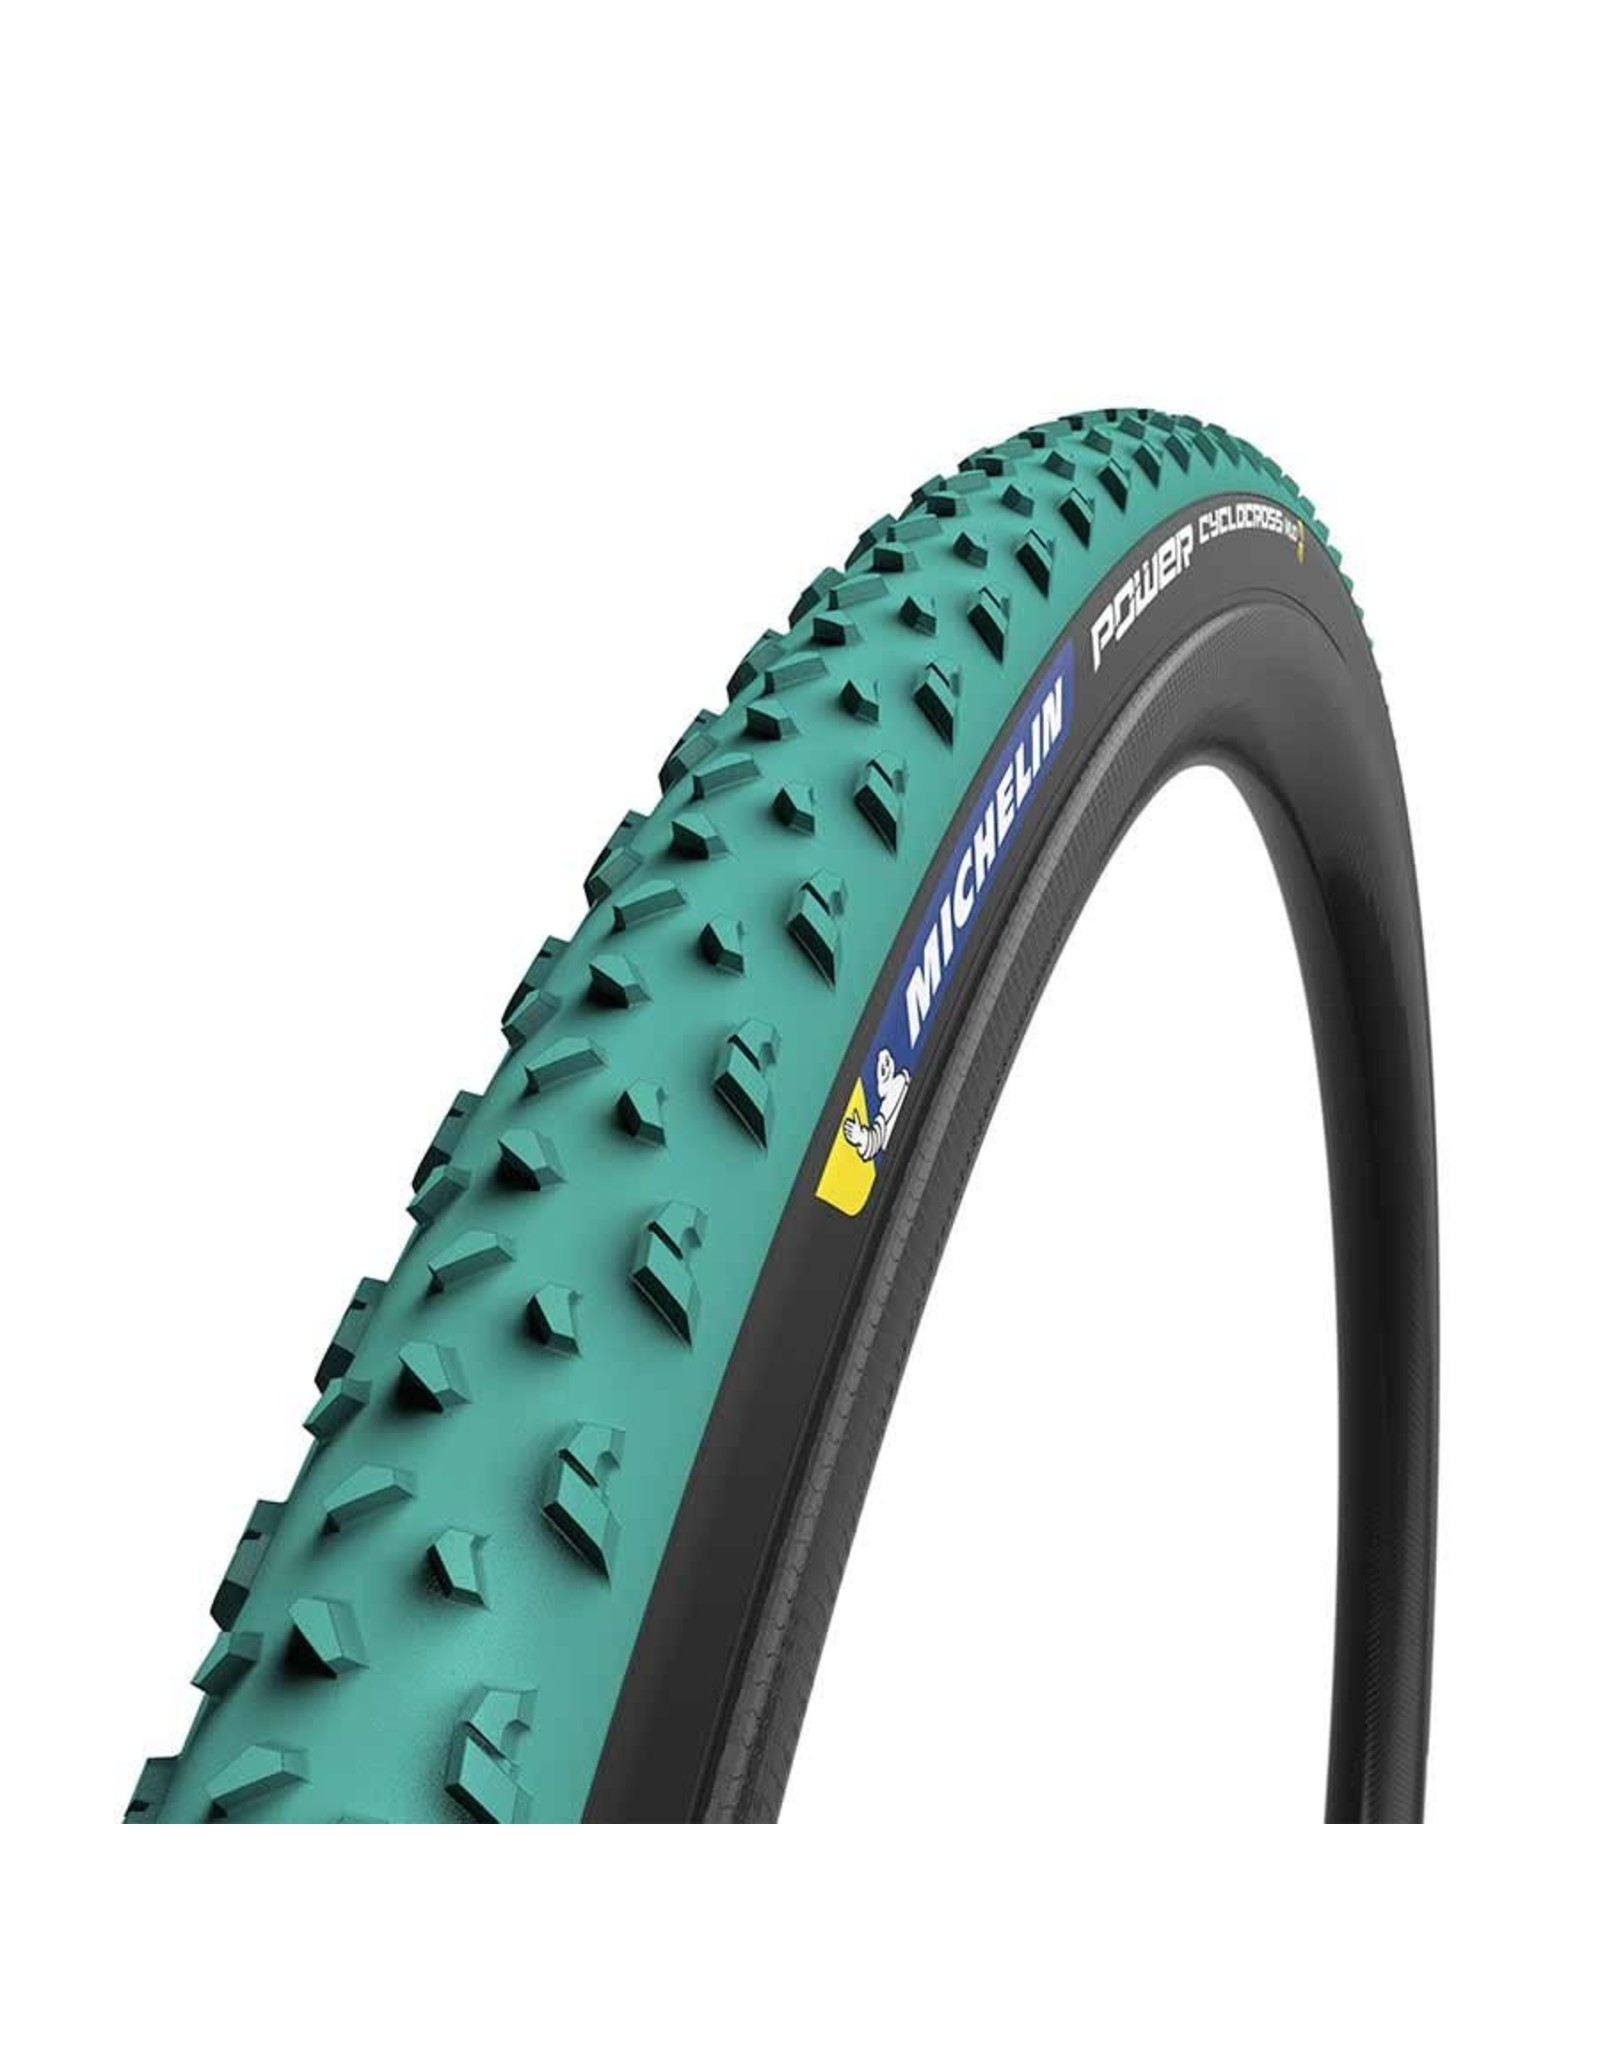 Michelin Michelin, Power Cyclocross Mud Tire, 700x33C, Folding, Tubeless Ready, Green Compound